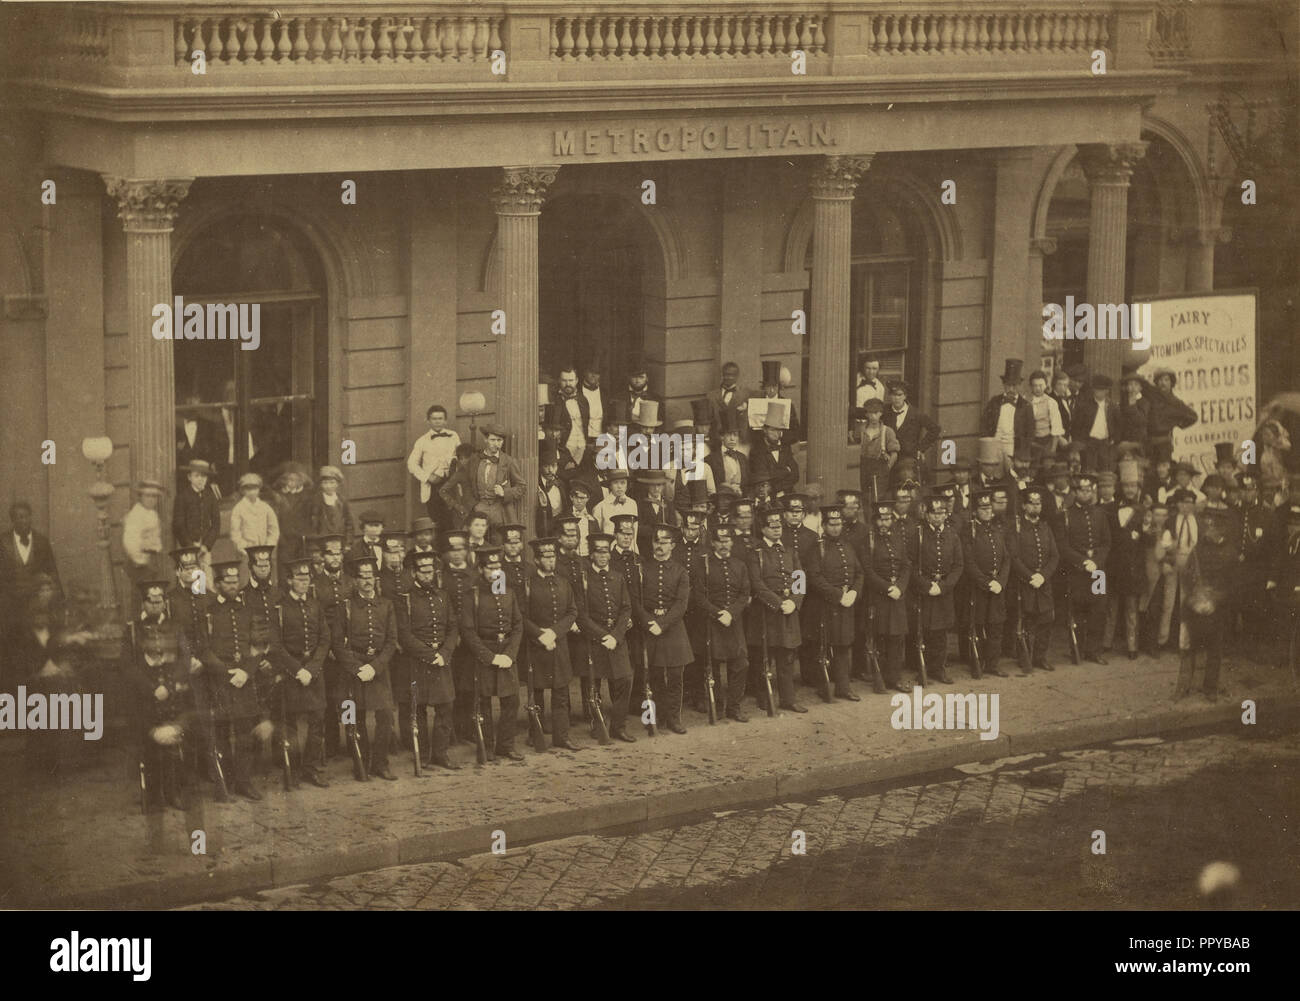 Group portrait of officers; Silas A. Holmes, American, 1820 - 1886, Charles DeForest Fredricks, American, 1823 - 1894) - Stock Image